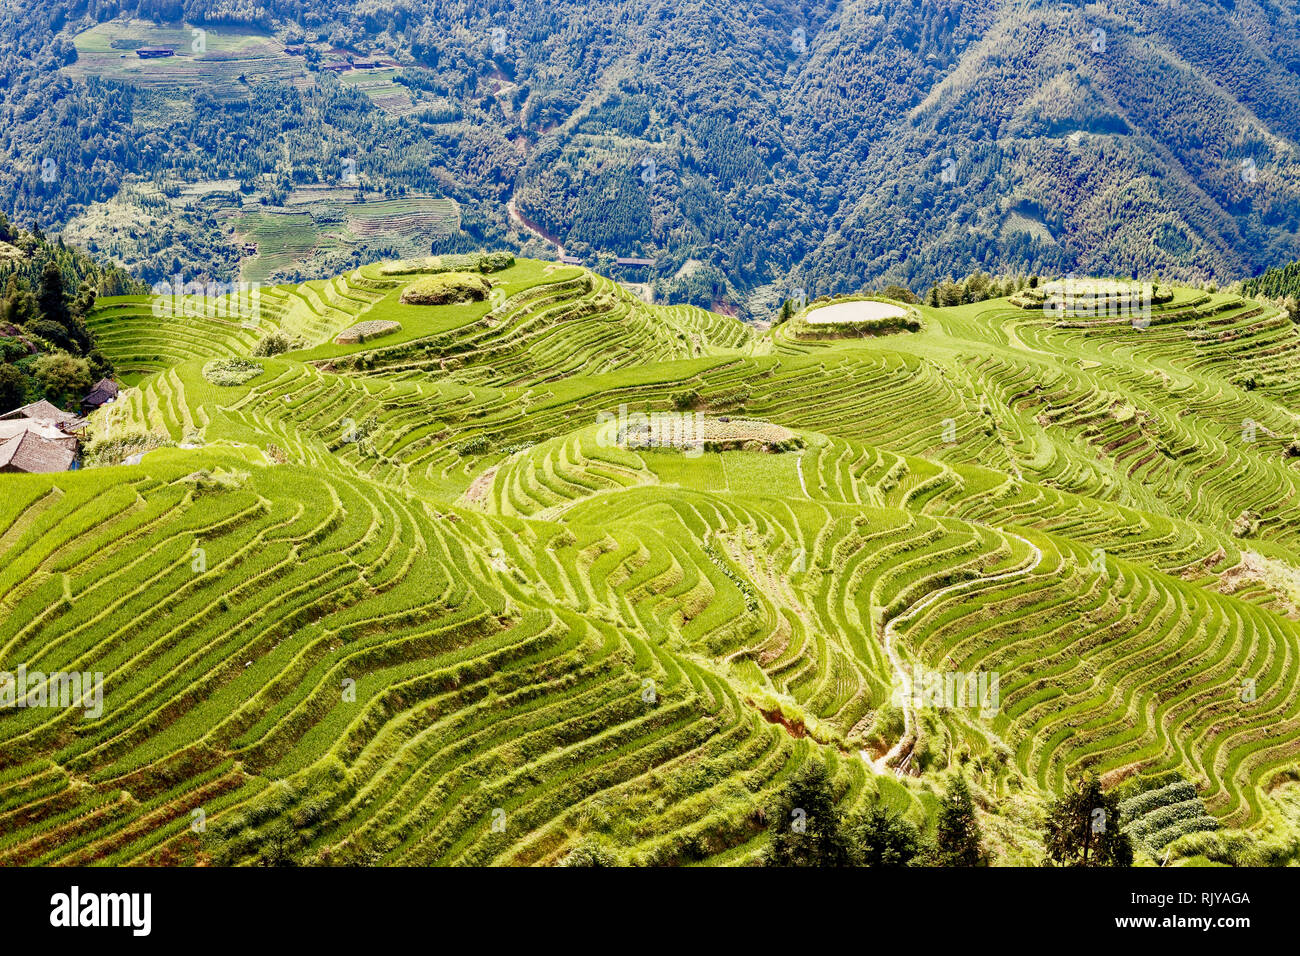 Guilin Region Rice Terraces, China - Stock Image